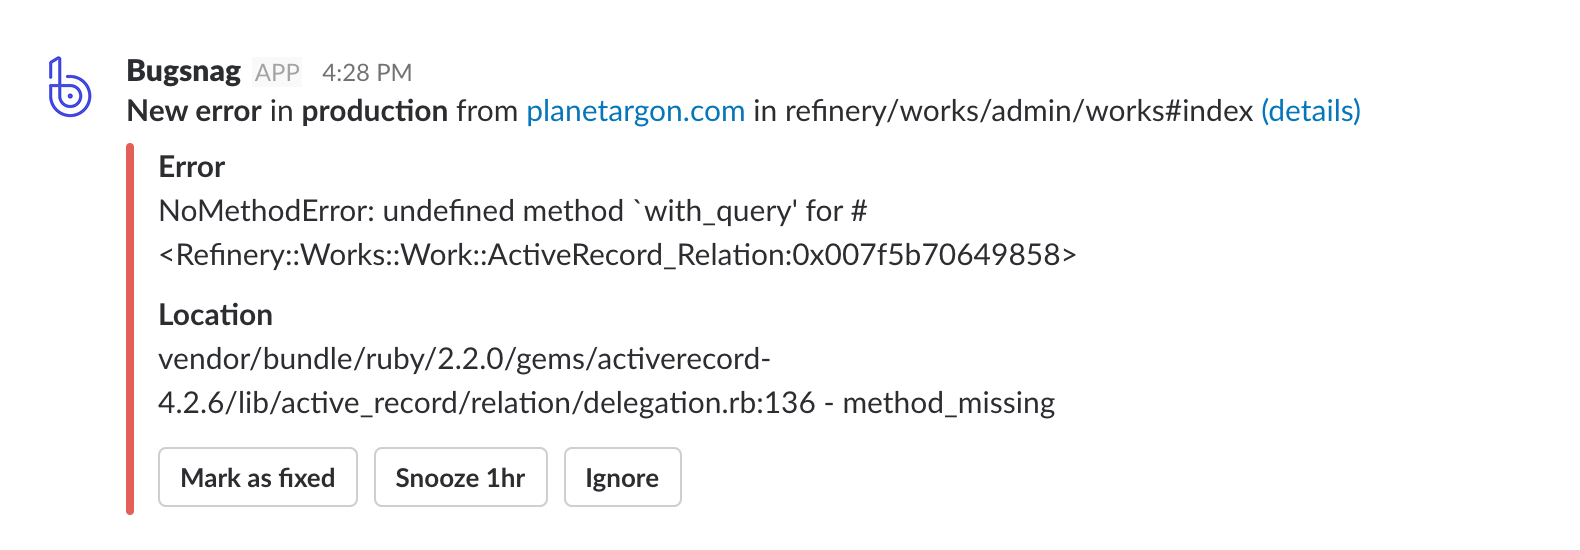 Bugsnag slack integration showing error